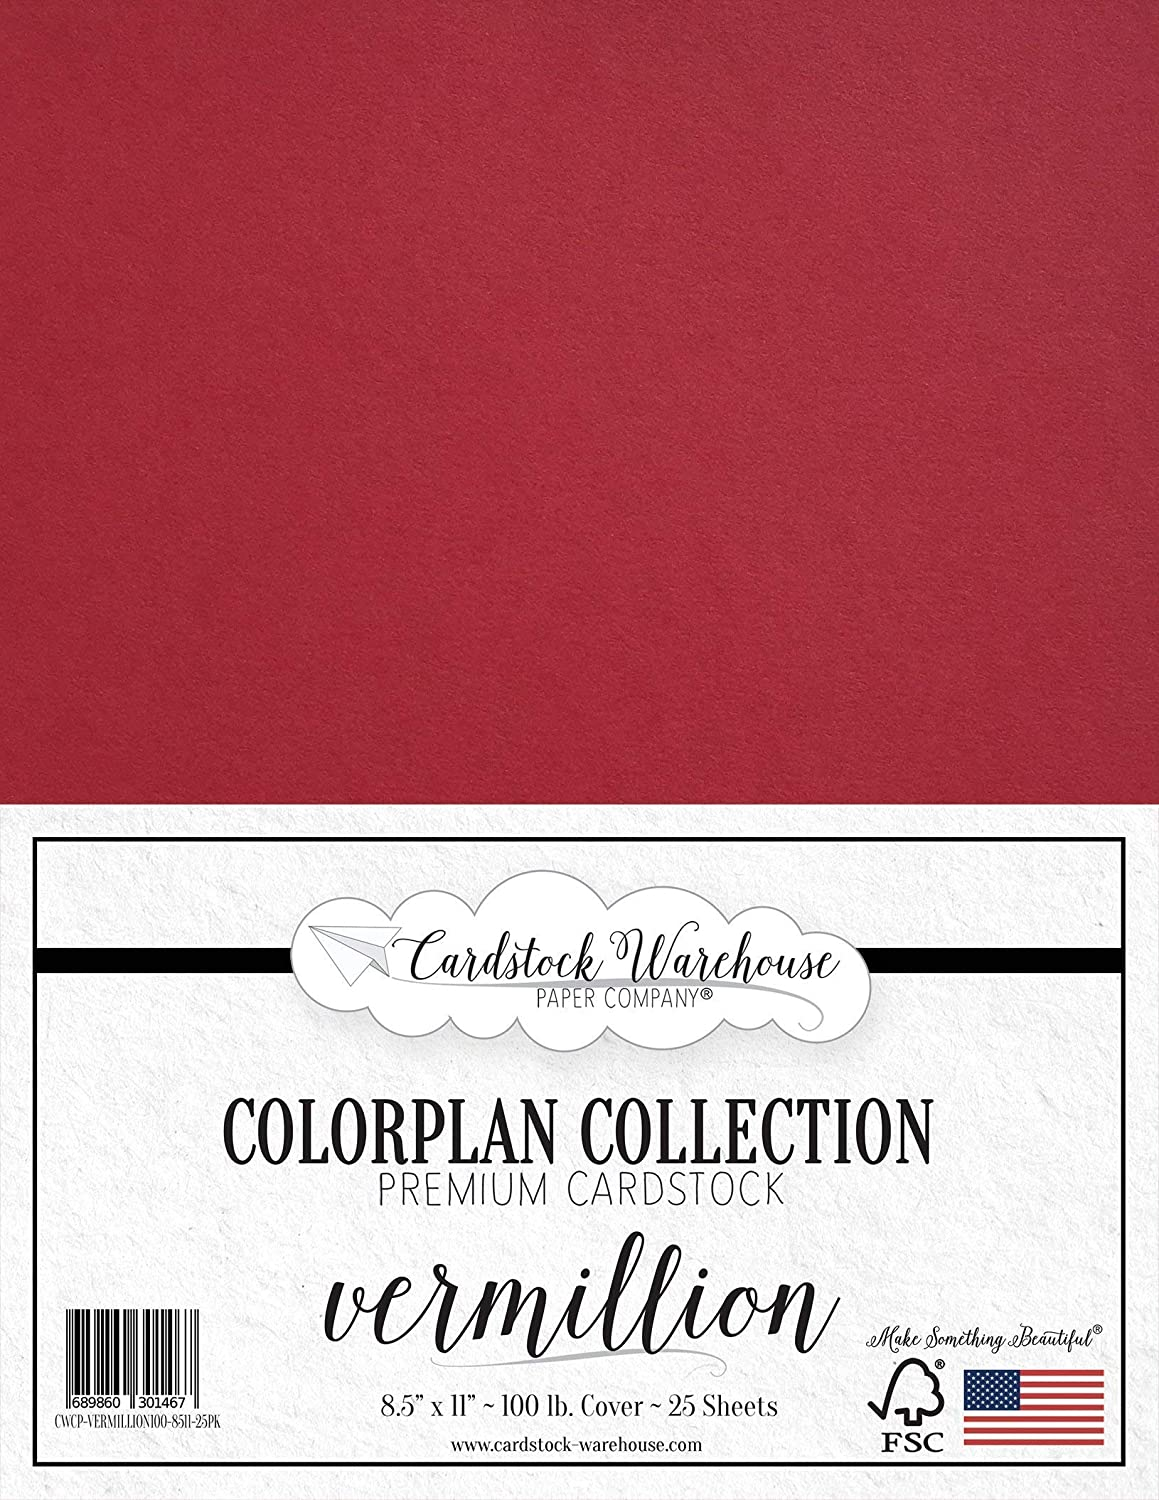 25 Sheets from Cardstock Warehouse 8.5 x 11 inch Premium 100 lb Scarlet RED Cardstock Paper Cover